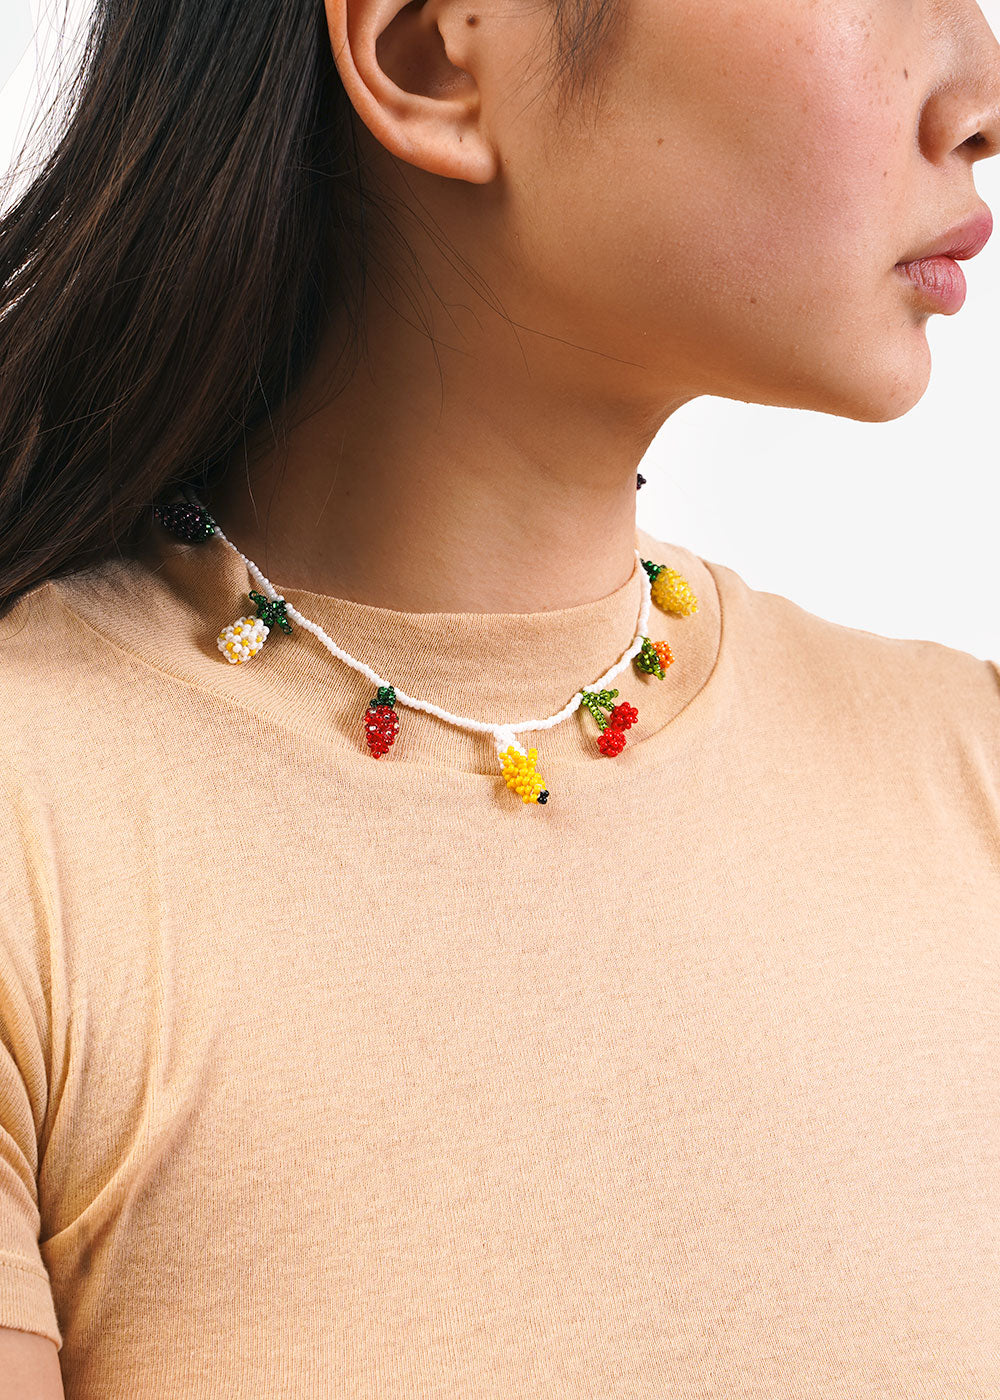 Pura Utz Fruit Salad Beaded Choker — New Classics Studios